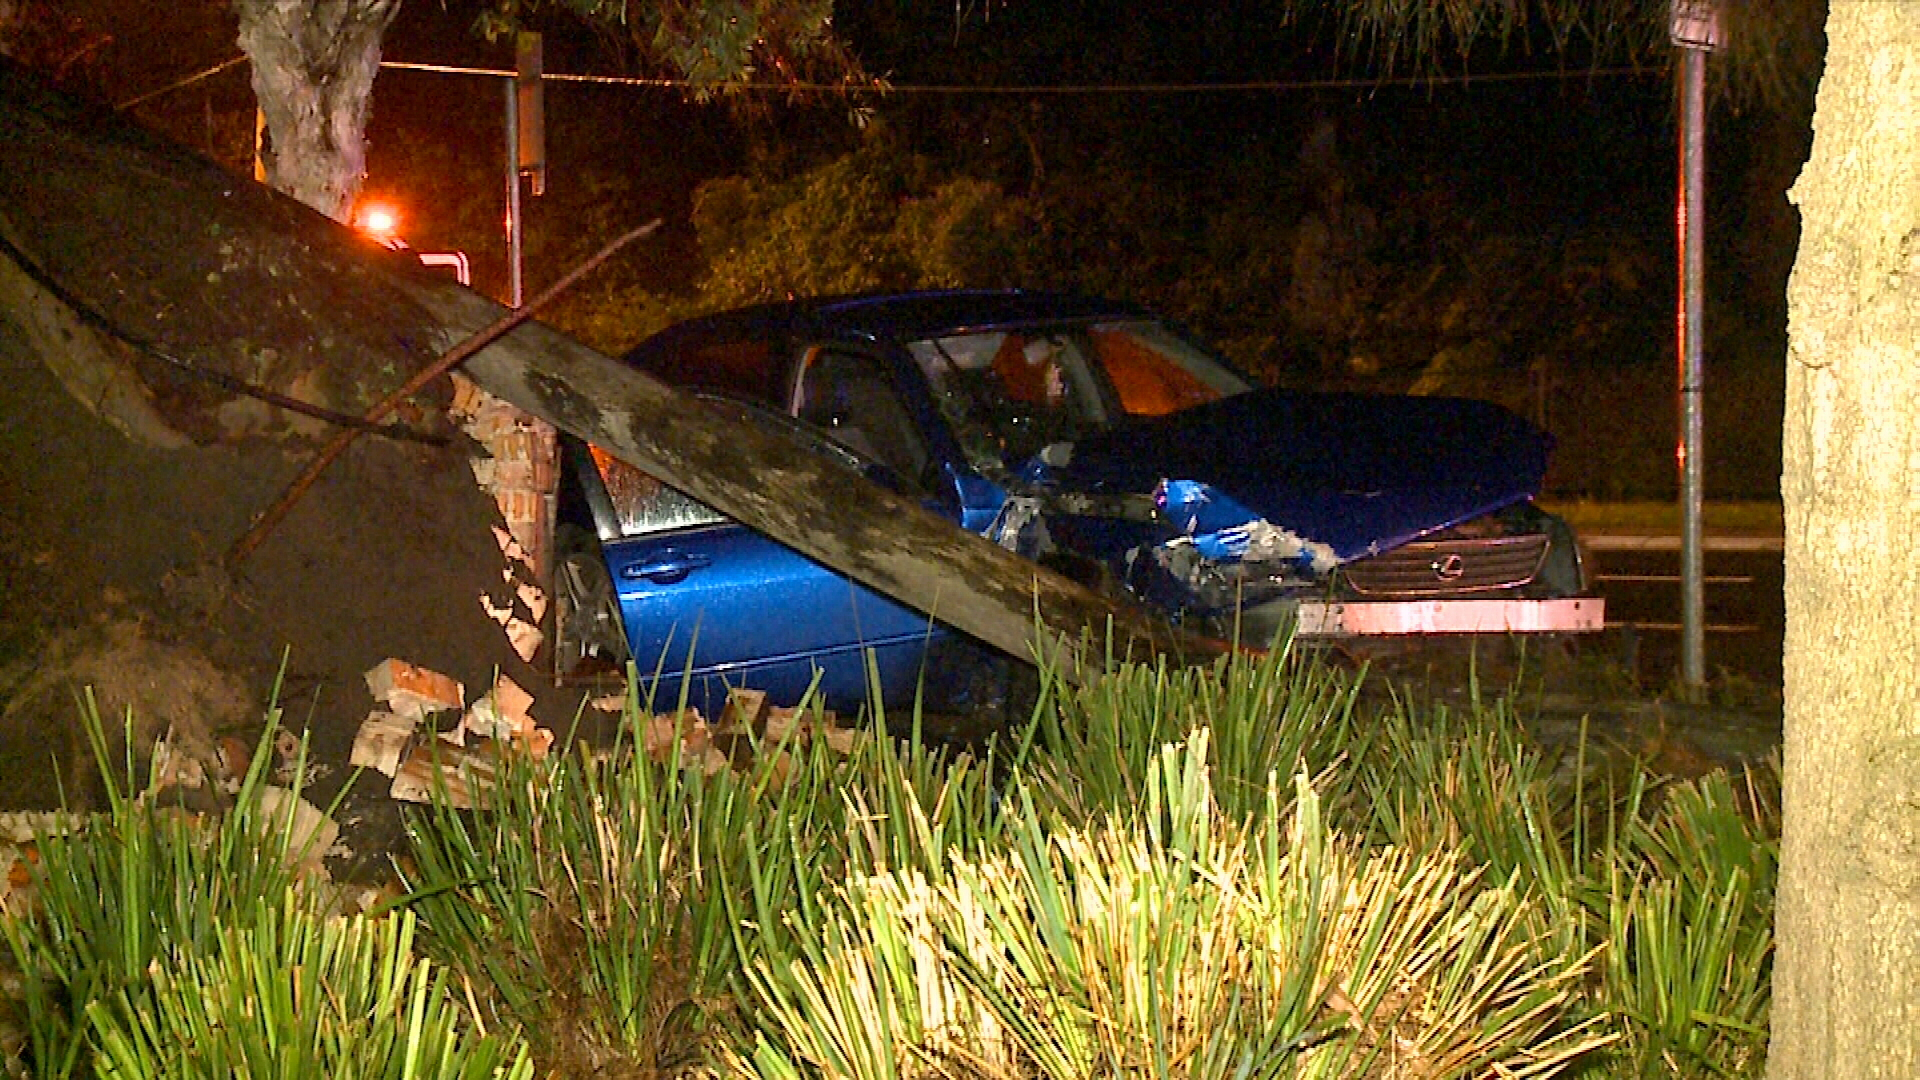 Driver flees scene after car crashed into pole